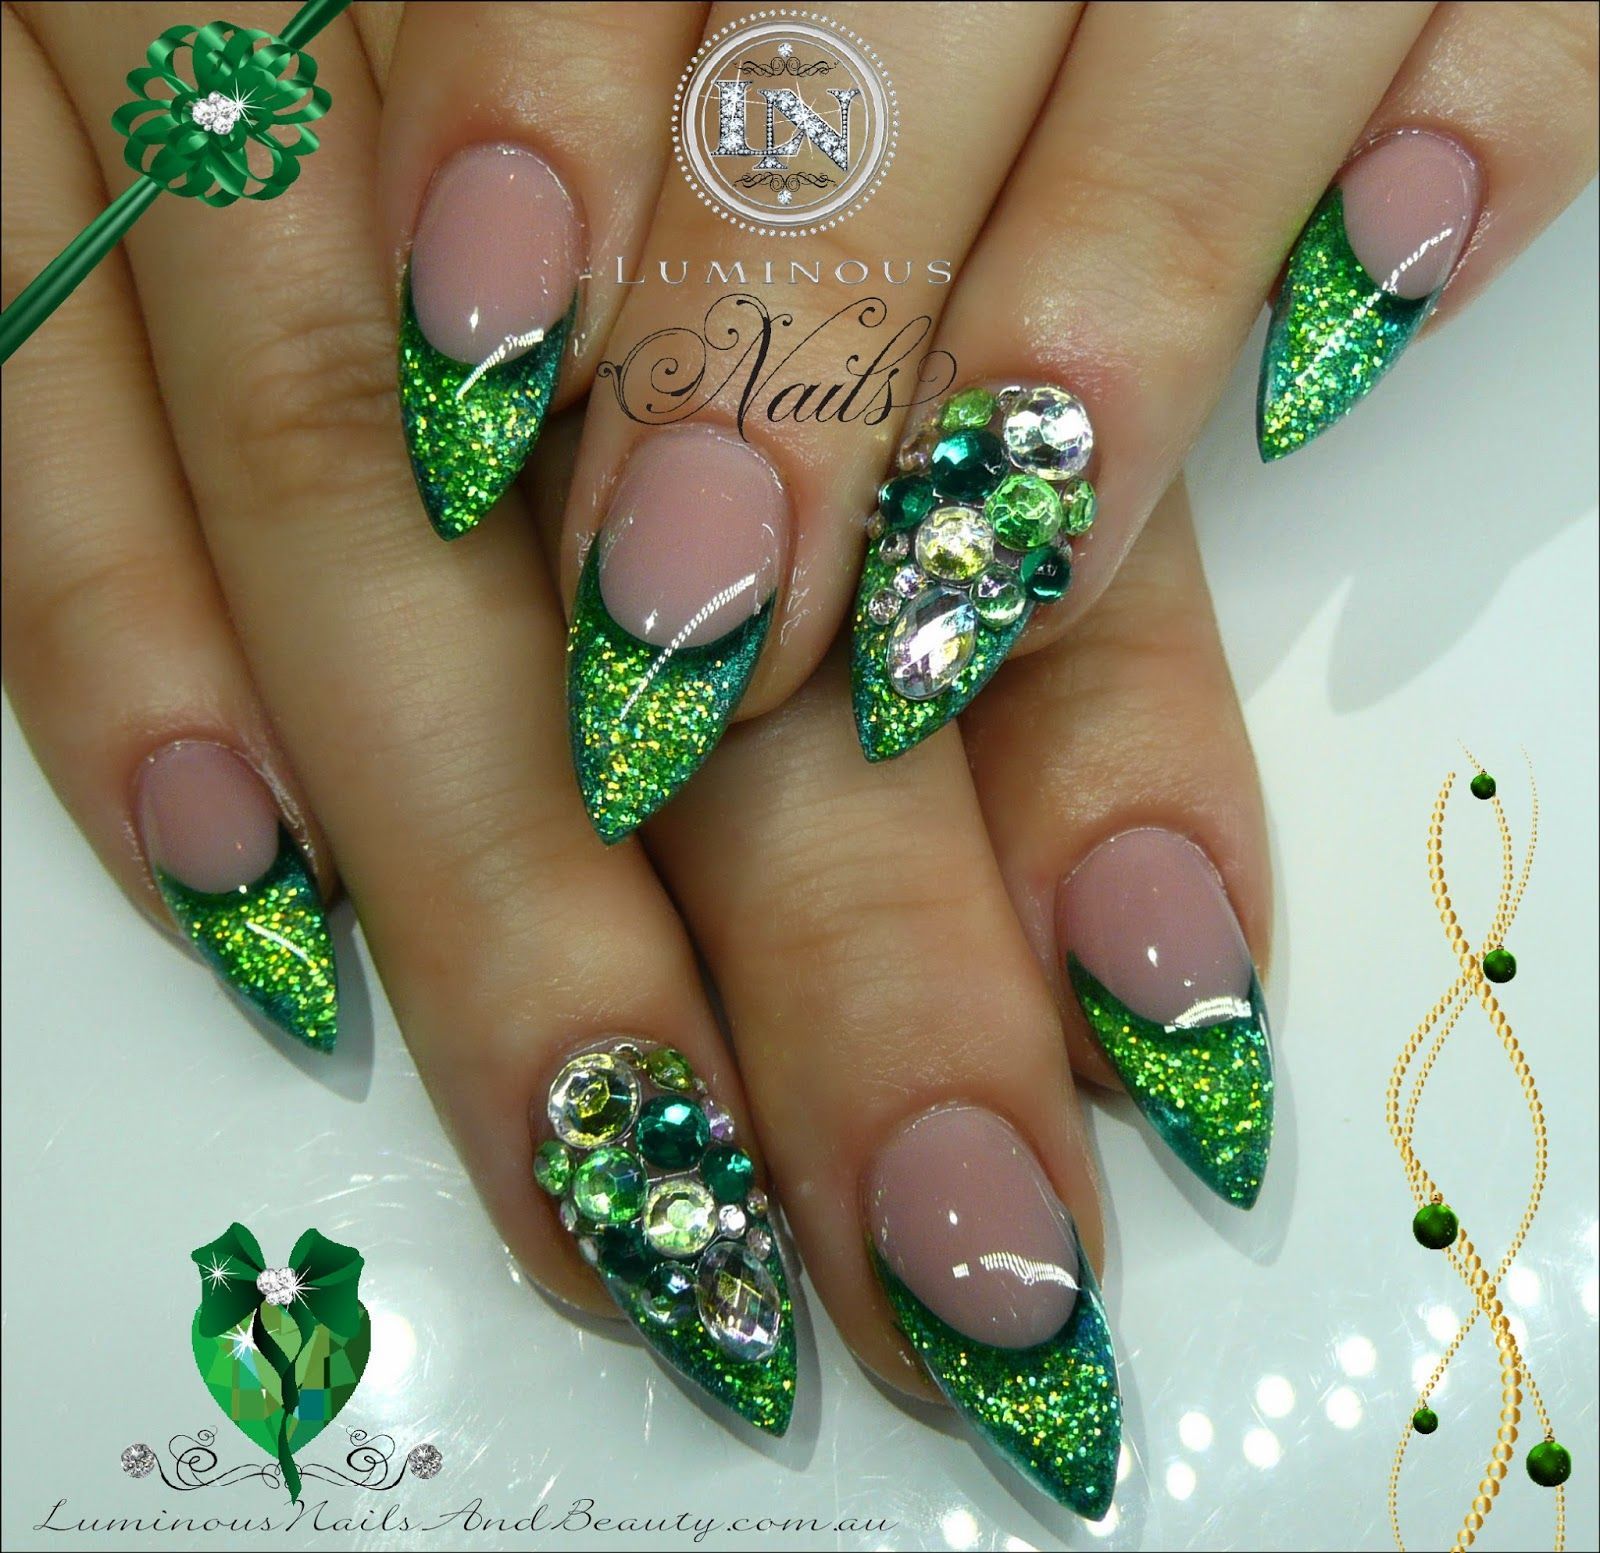 Luminous nails glittery green acrylic and gel nails with crystals luminous nails glittery green acrylic and gel nails with crystals prinsesfo Gallery